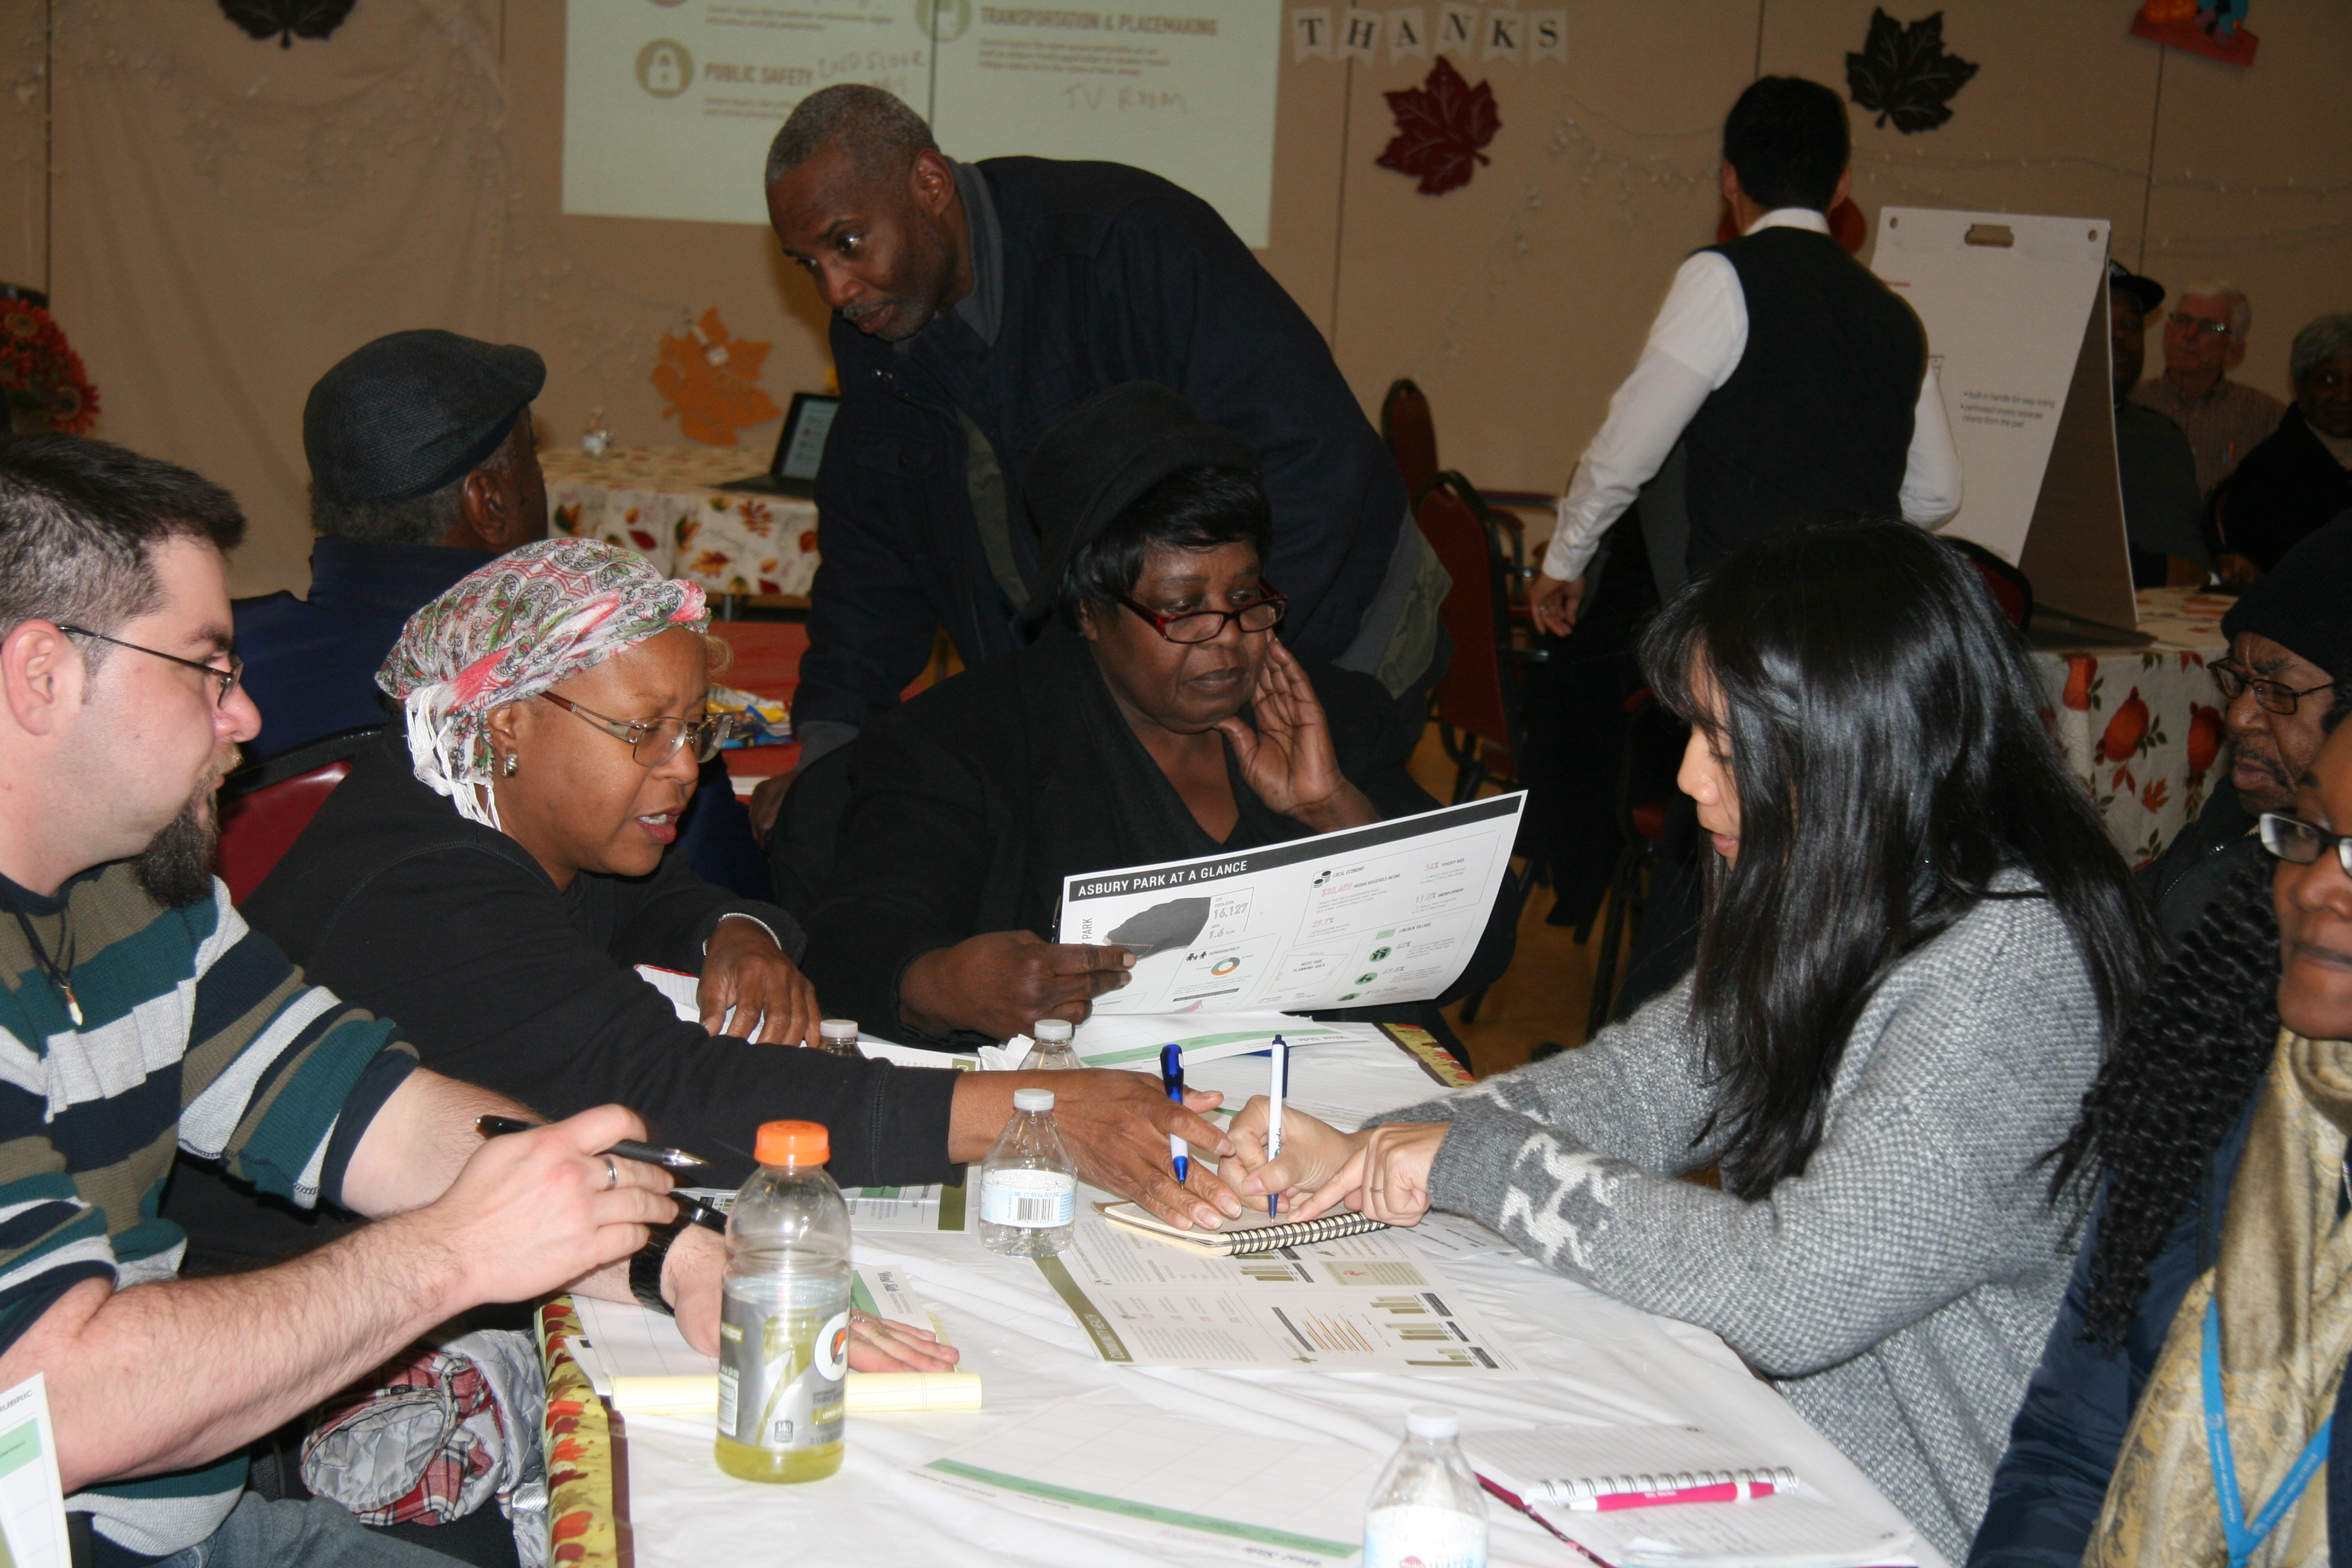 Residents And Stakeholder Organizations Break Into Working Groups To Discuss Concerns And Goals For The Neighborhood, November 2016. Credit: WRT